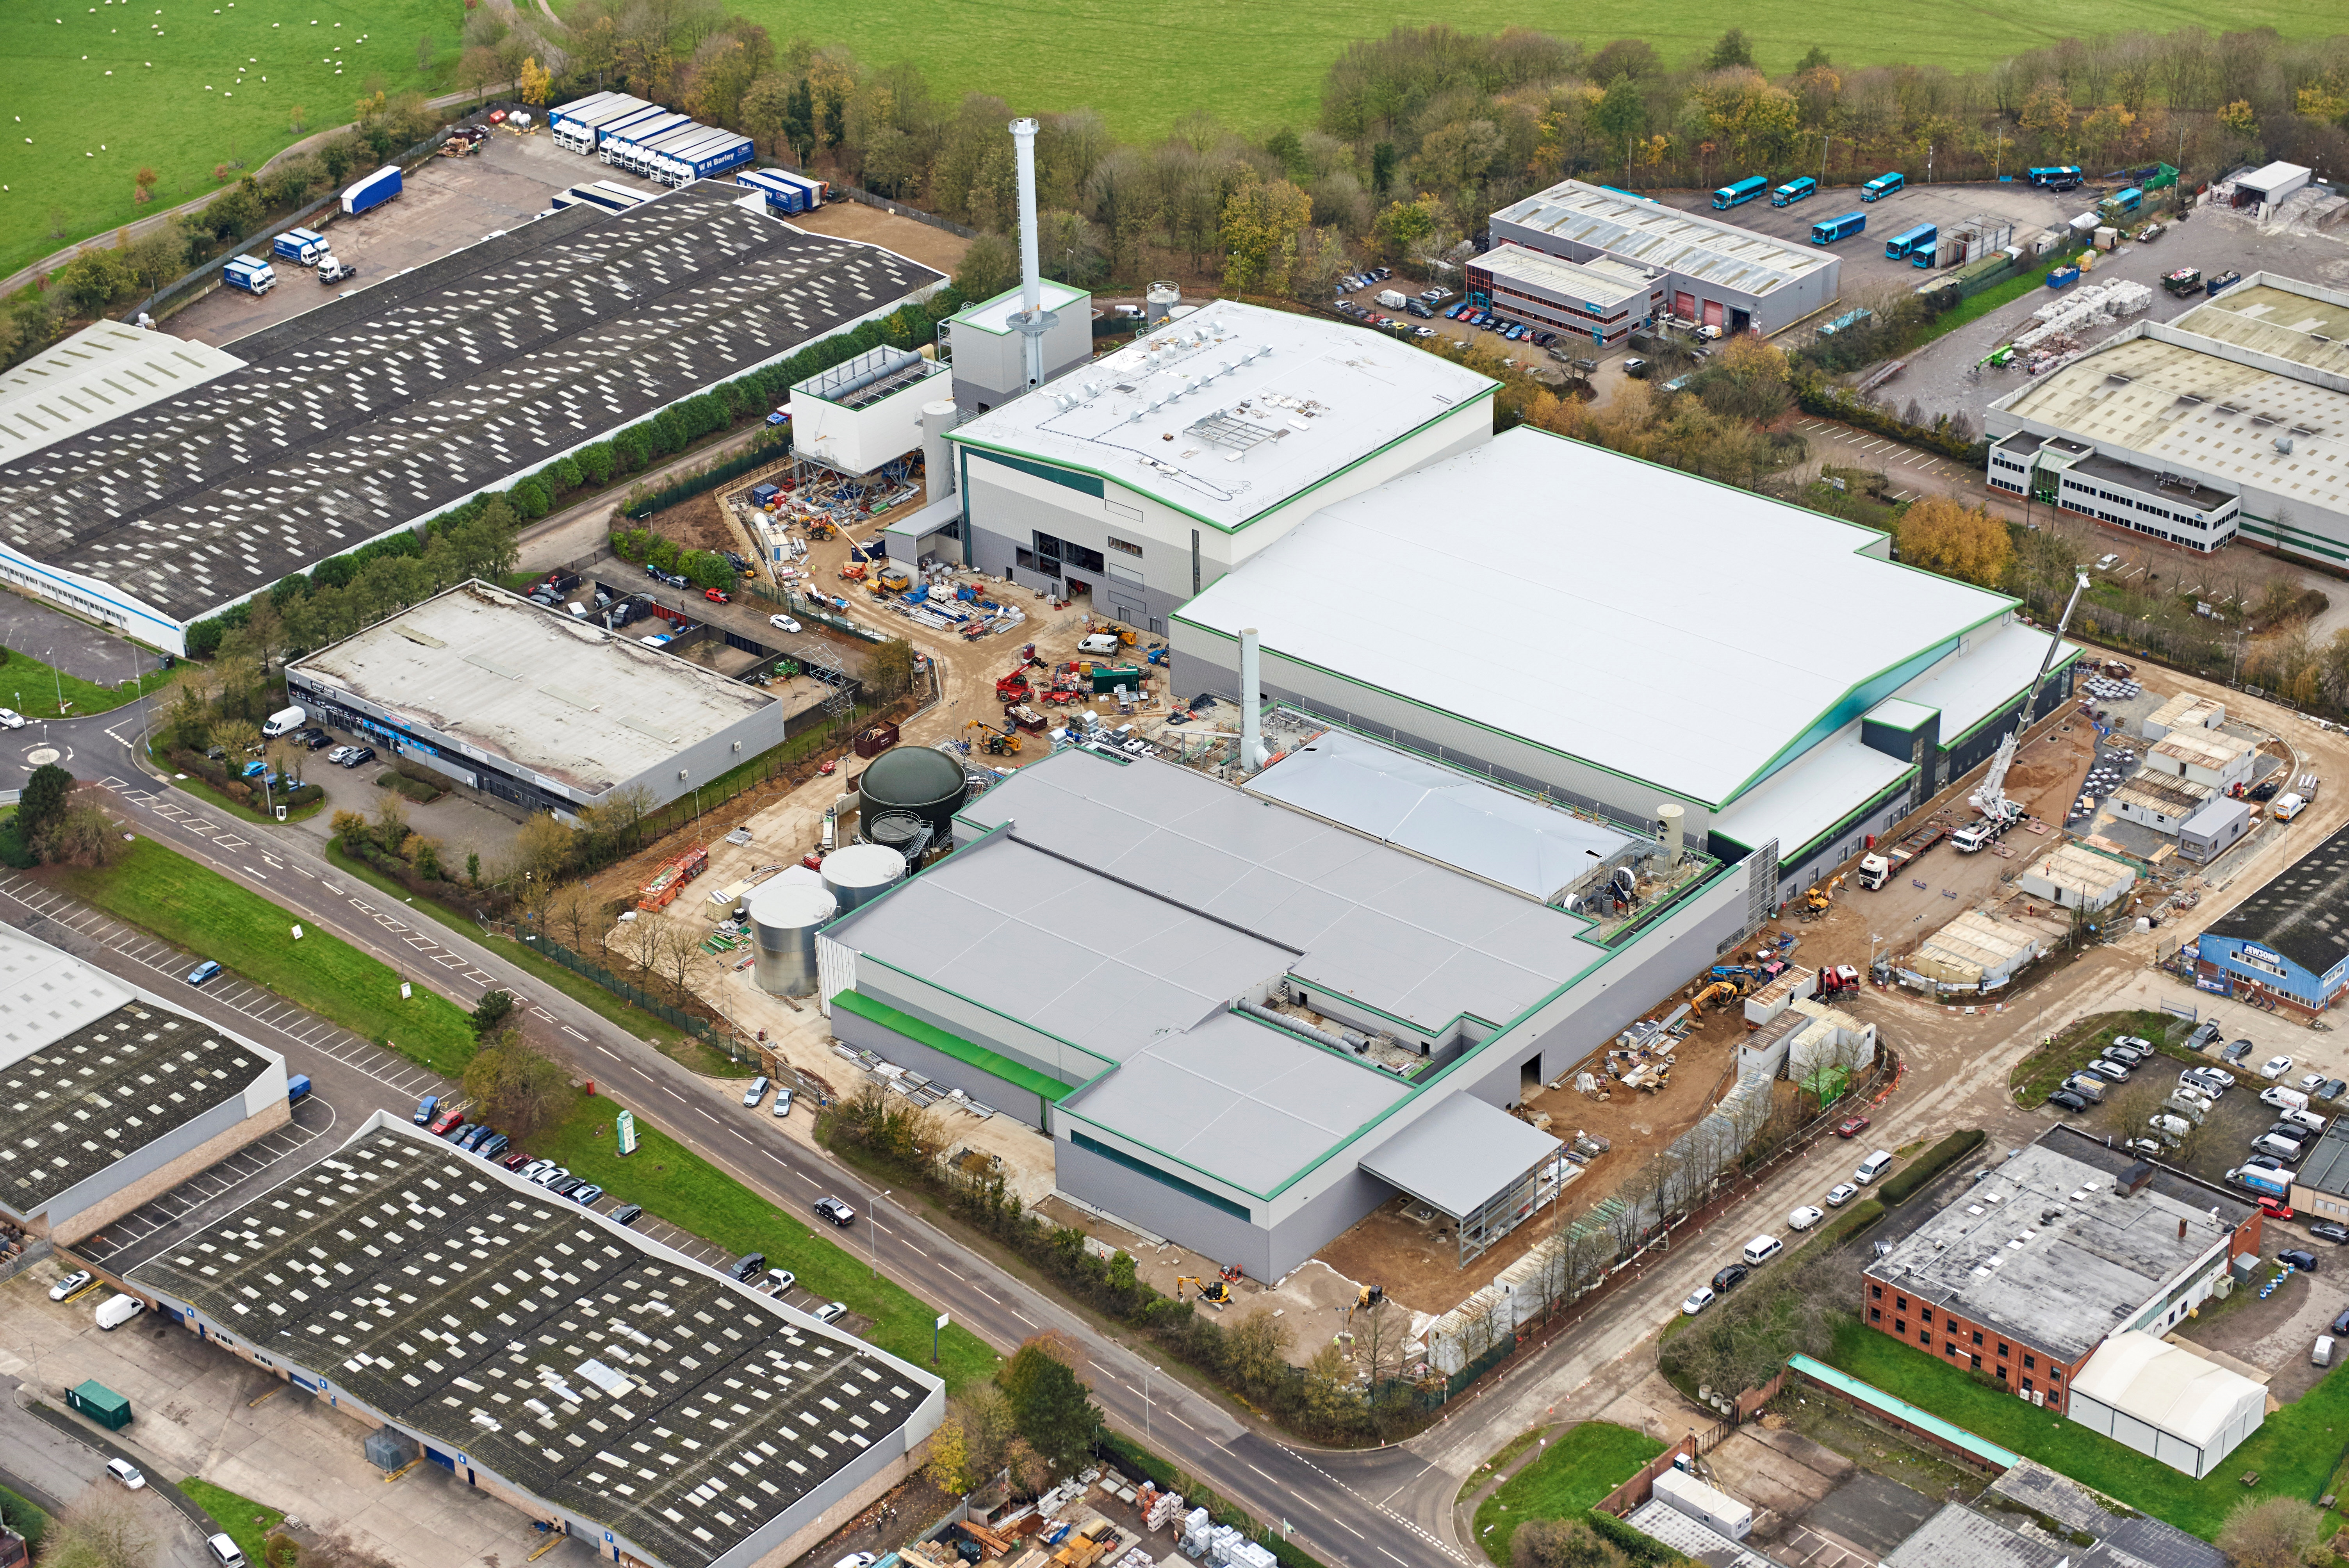 Aerial view of the Milton Keynes Waste Recovery Park